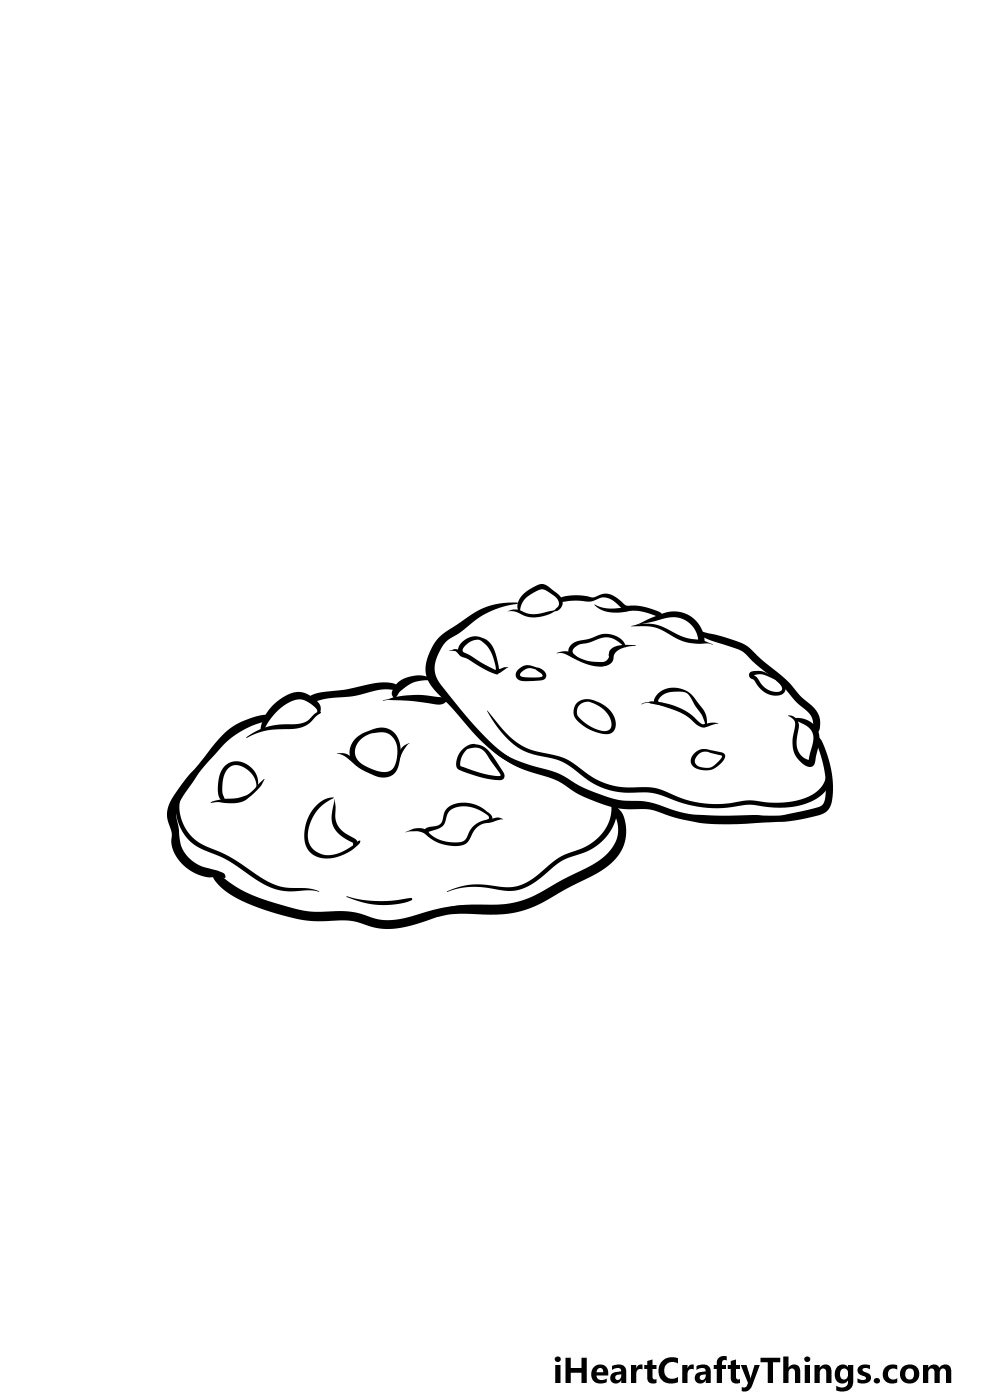 drawing a cookie step 5